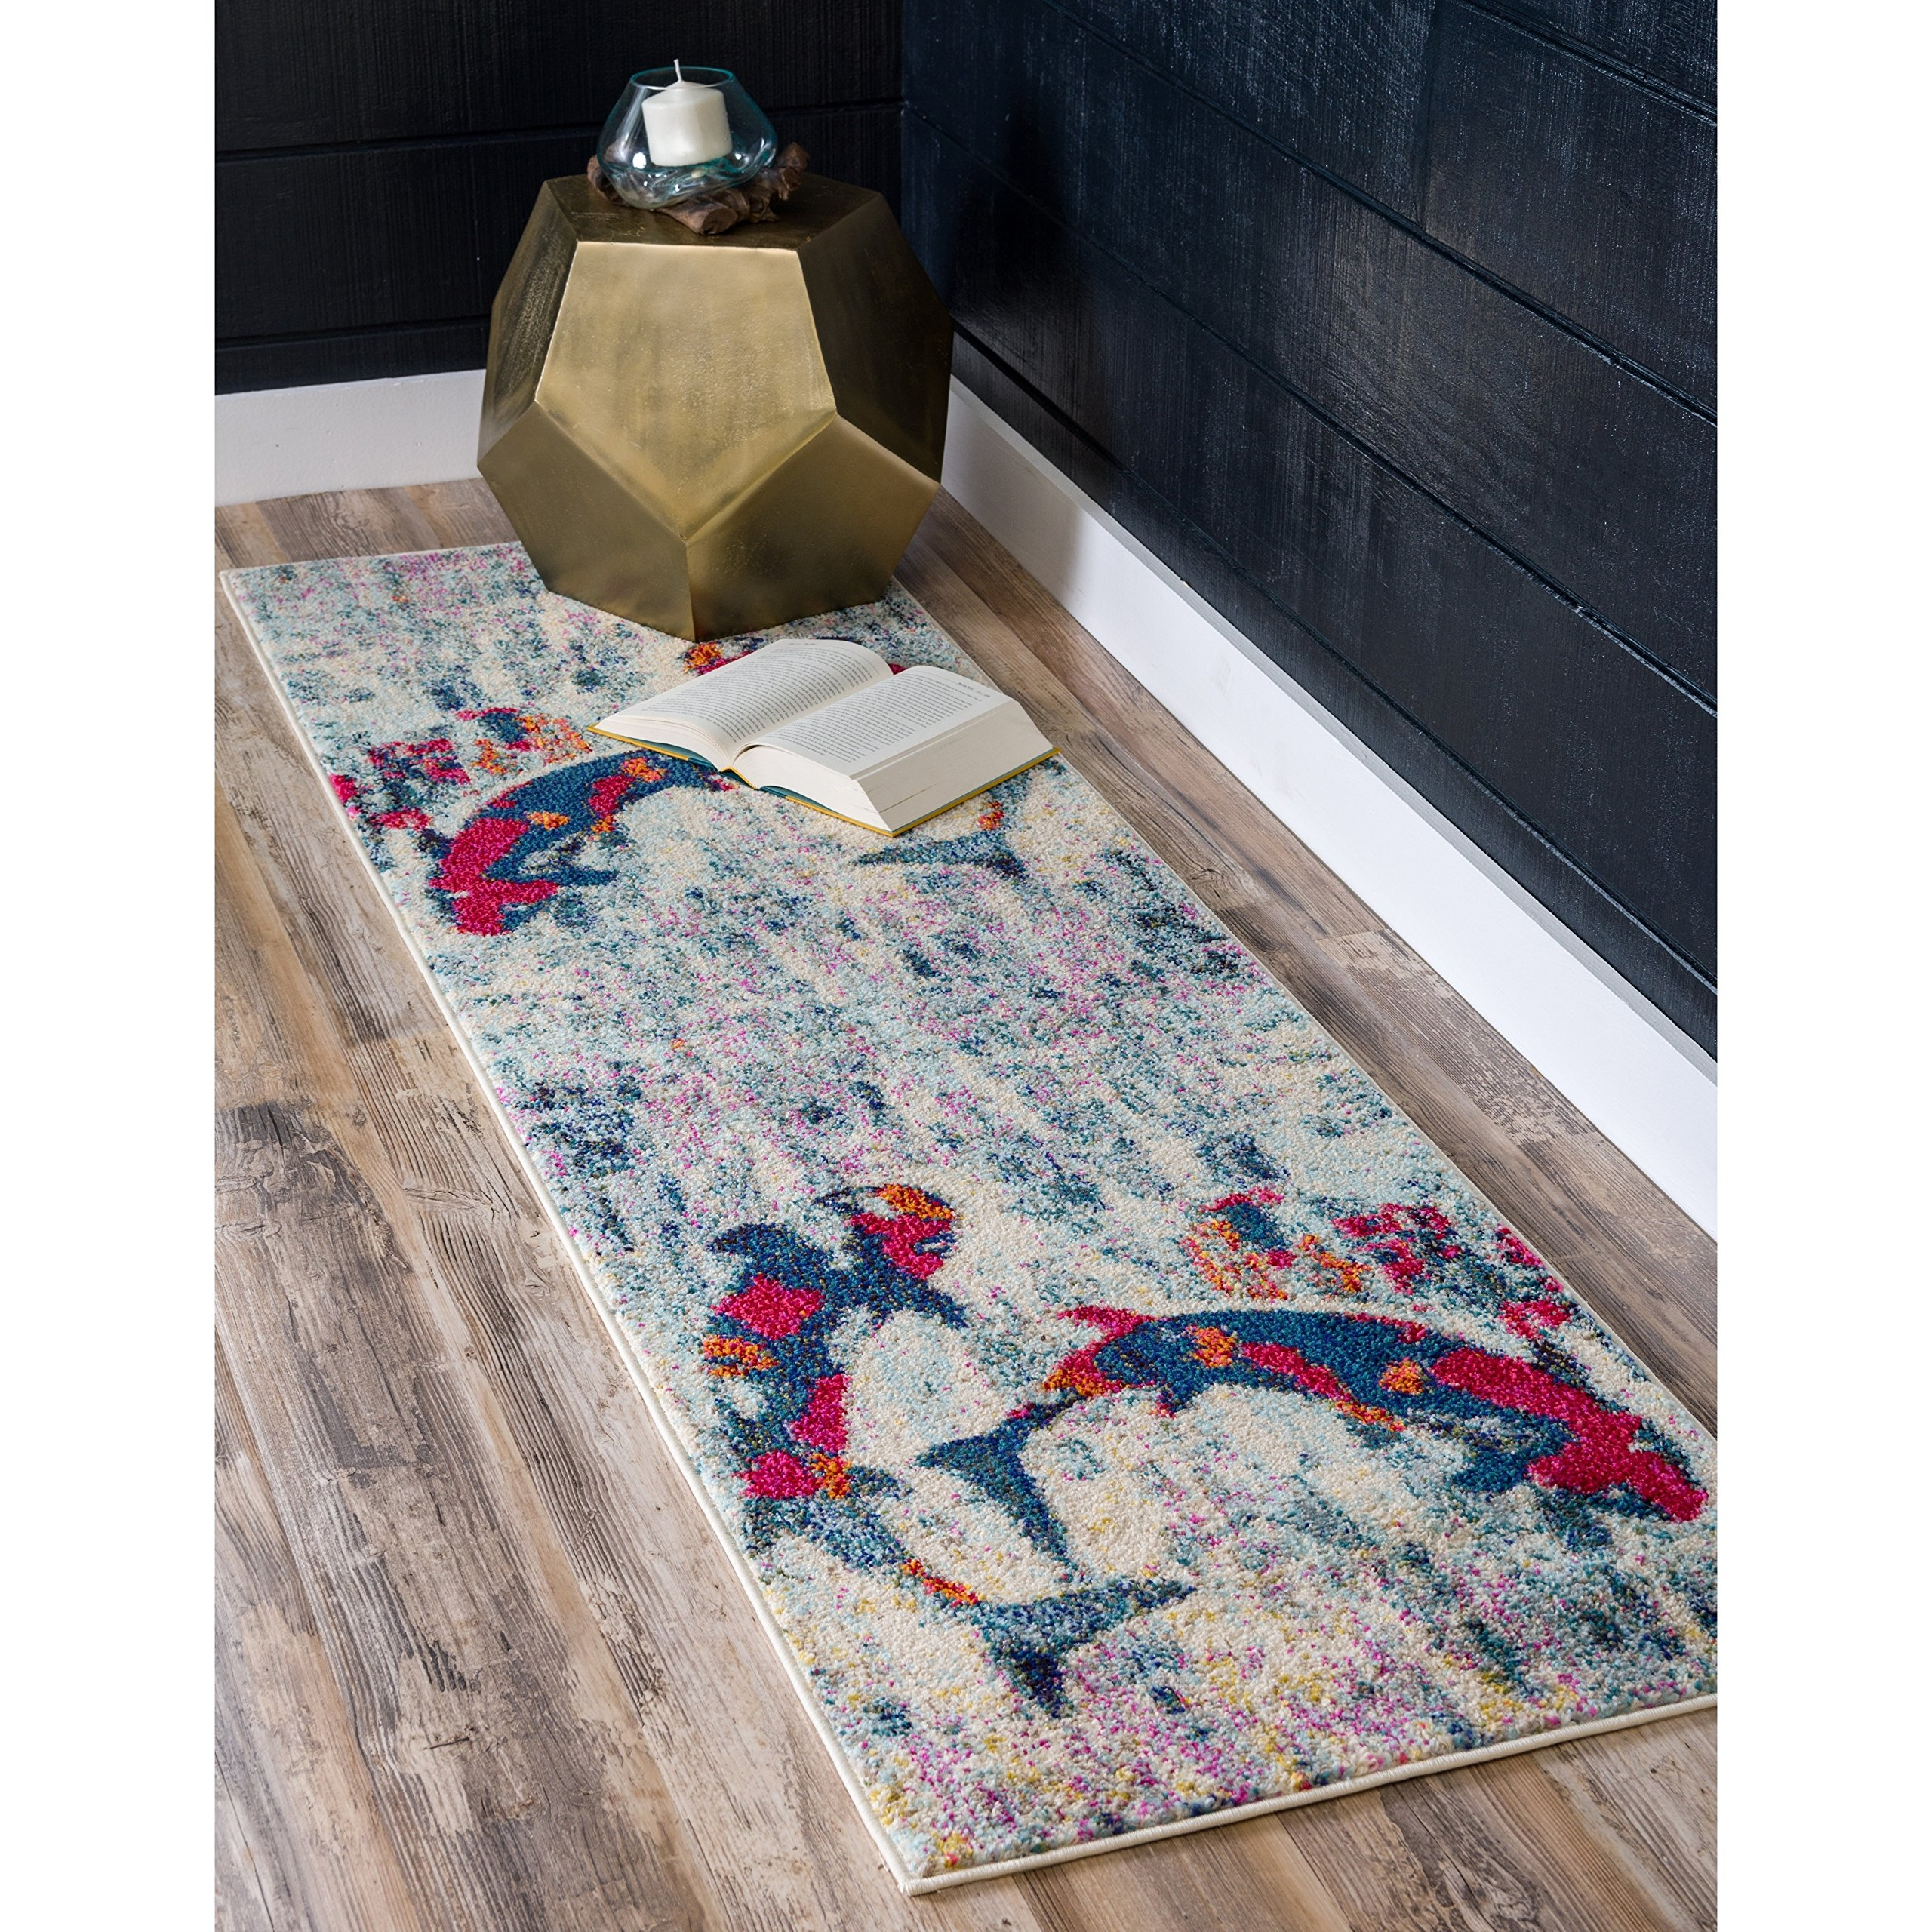 Ln 2'2 x 6'7 Blue Red Beach Theme Runner Rug Rectangle, Indoor Gray Beige Fish Pattern Hallway Carpet Animal Nautical Coastal Entryway Ocean Sea Tropical Themed Mat Entrance Way, Polypropylene